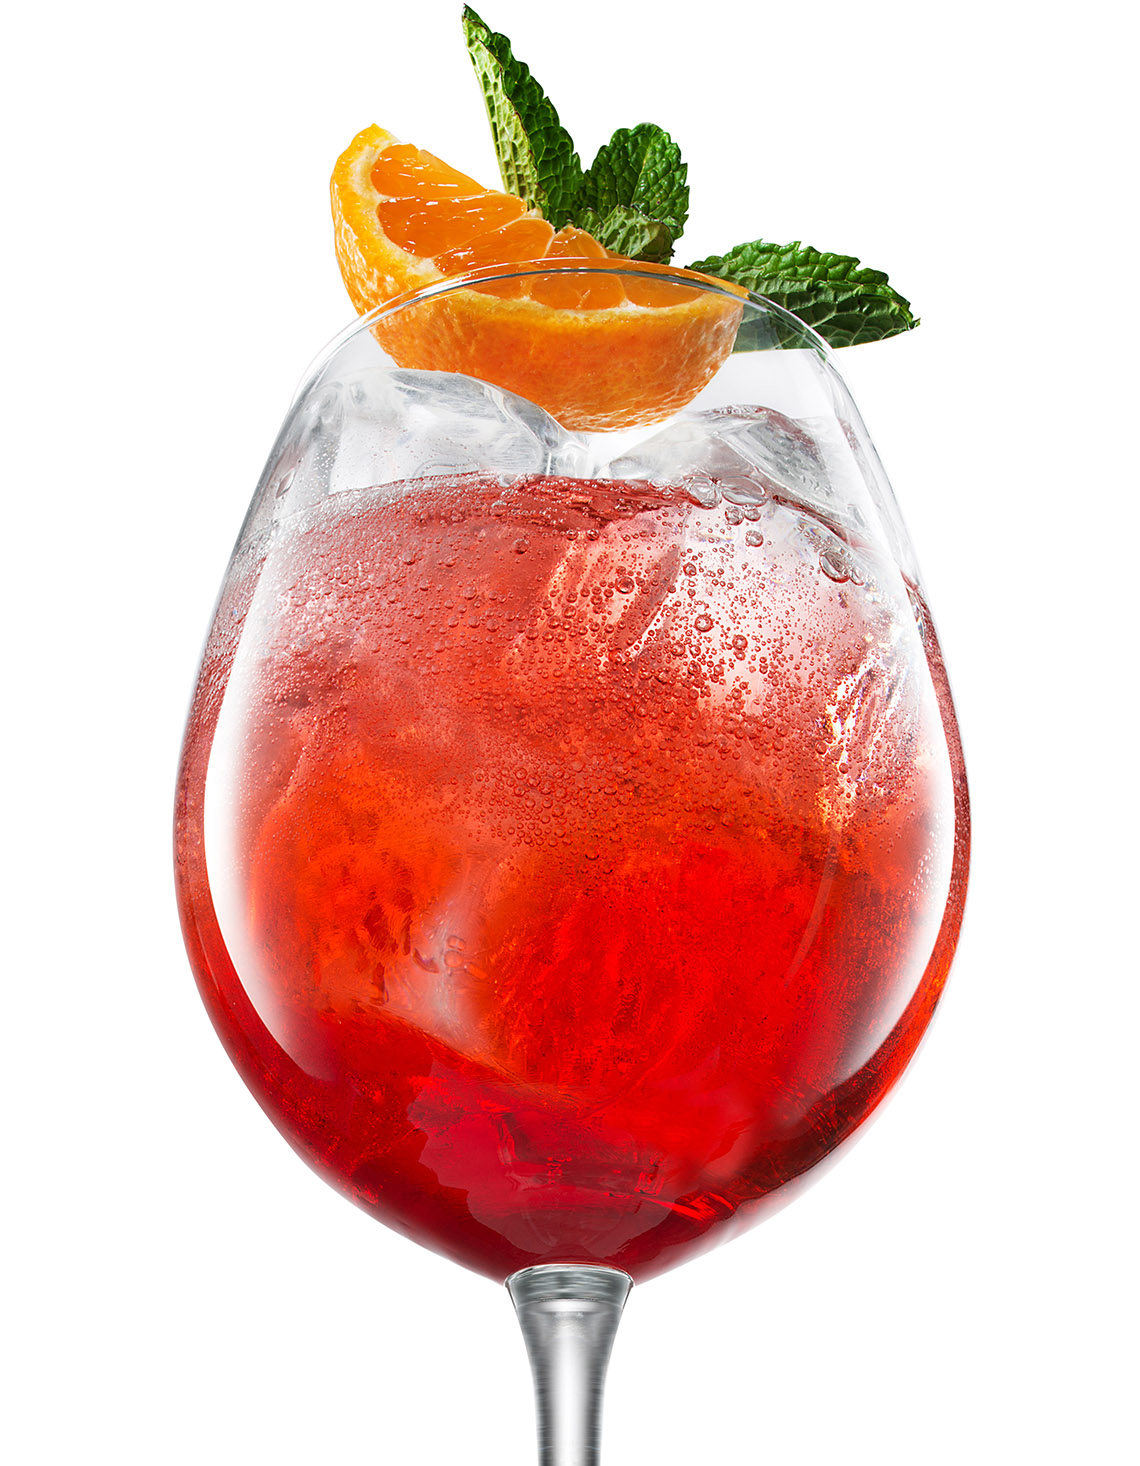 New-york-liquid-phtography-beverage-photography-coktails